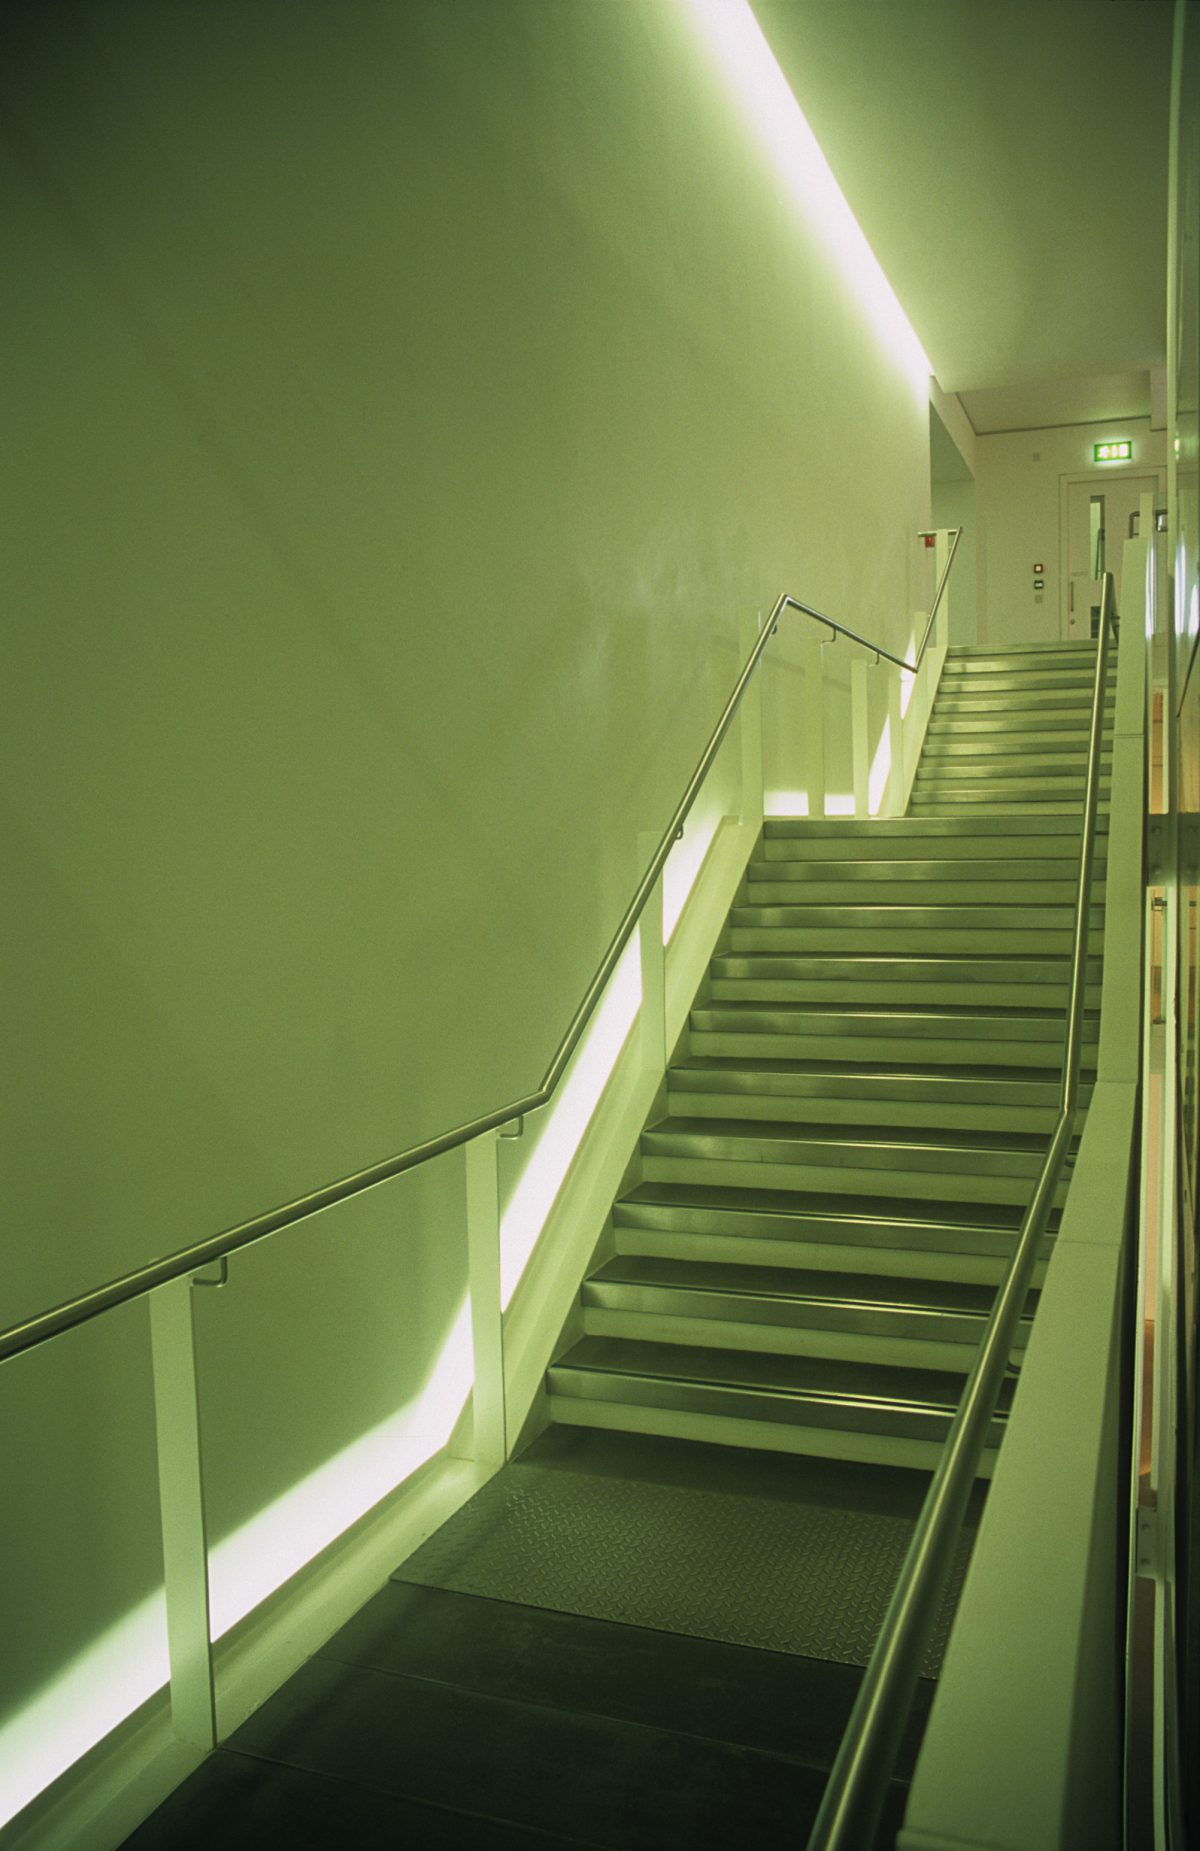 Staircase - At the Architecture Center, stair